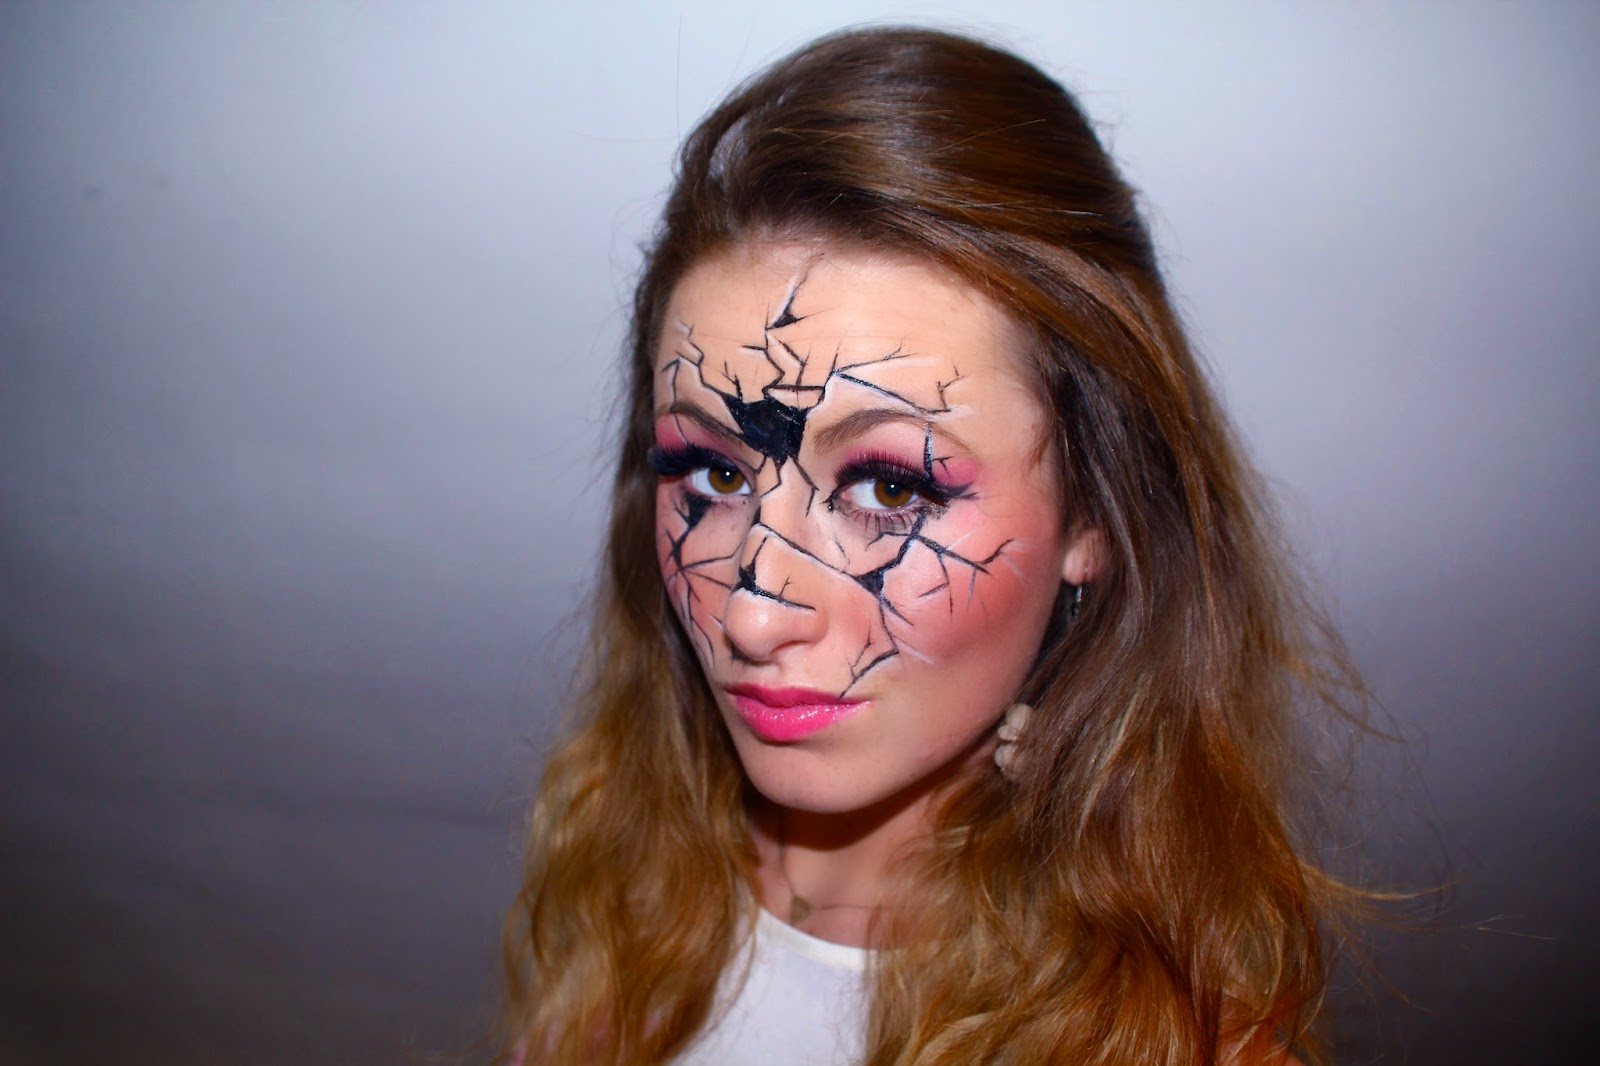 Wonderworld maquillage de poup e pour halloween - Maquillage poupe demoniaque ...